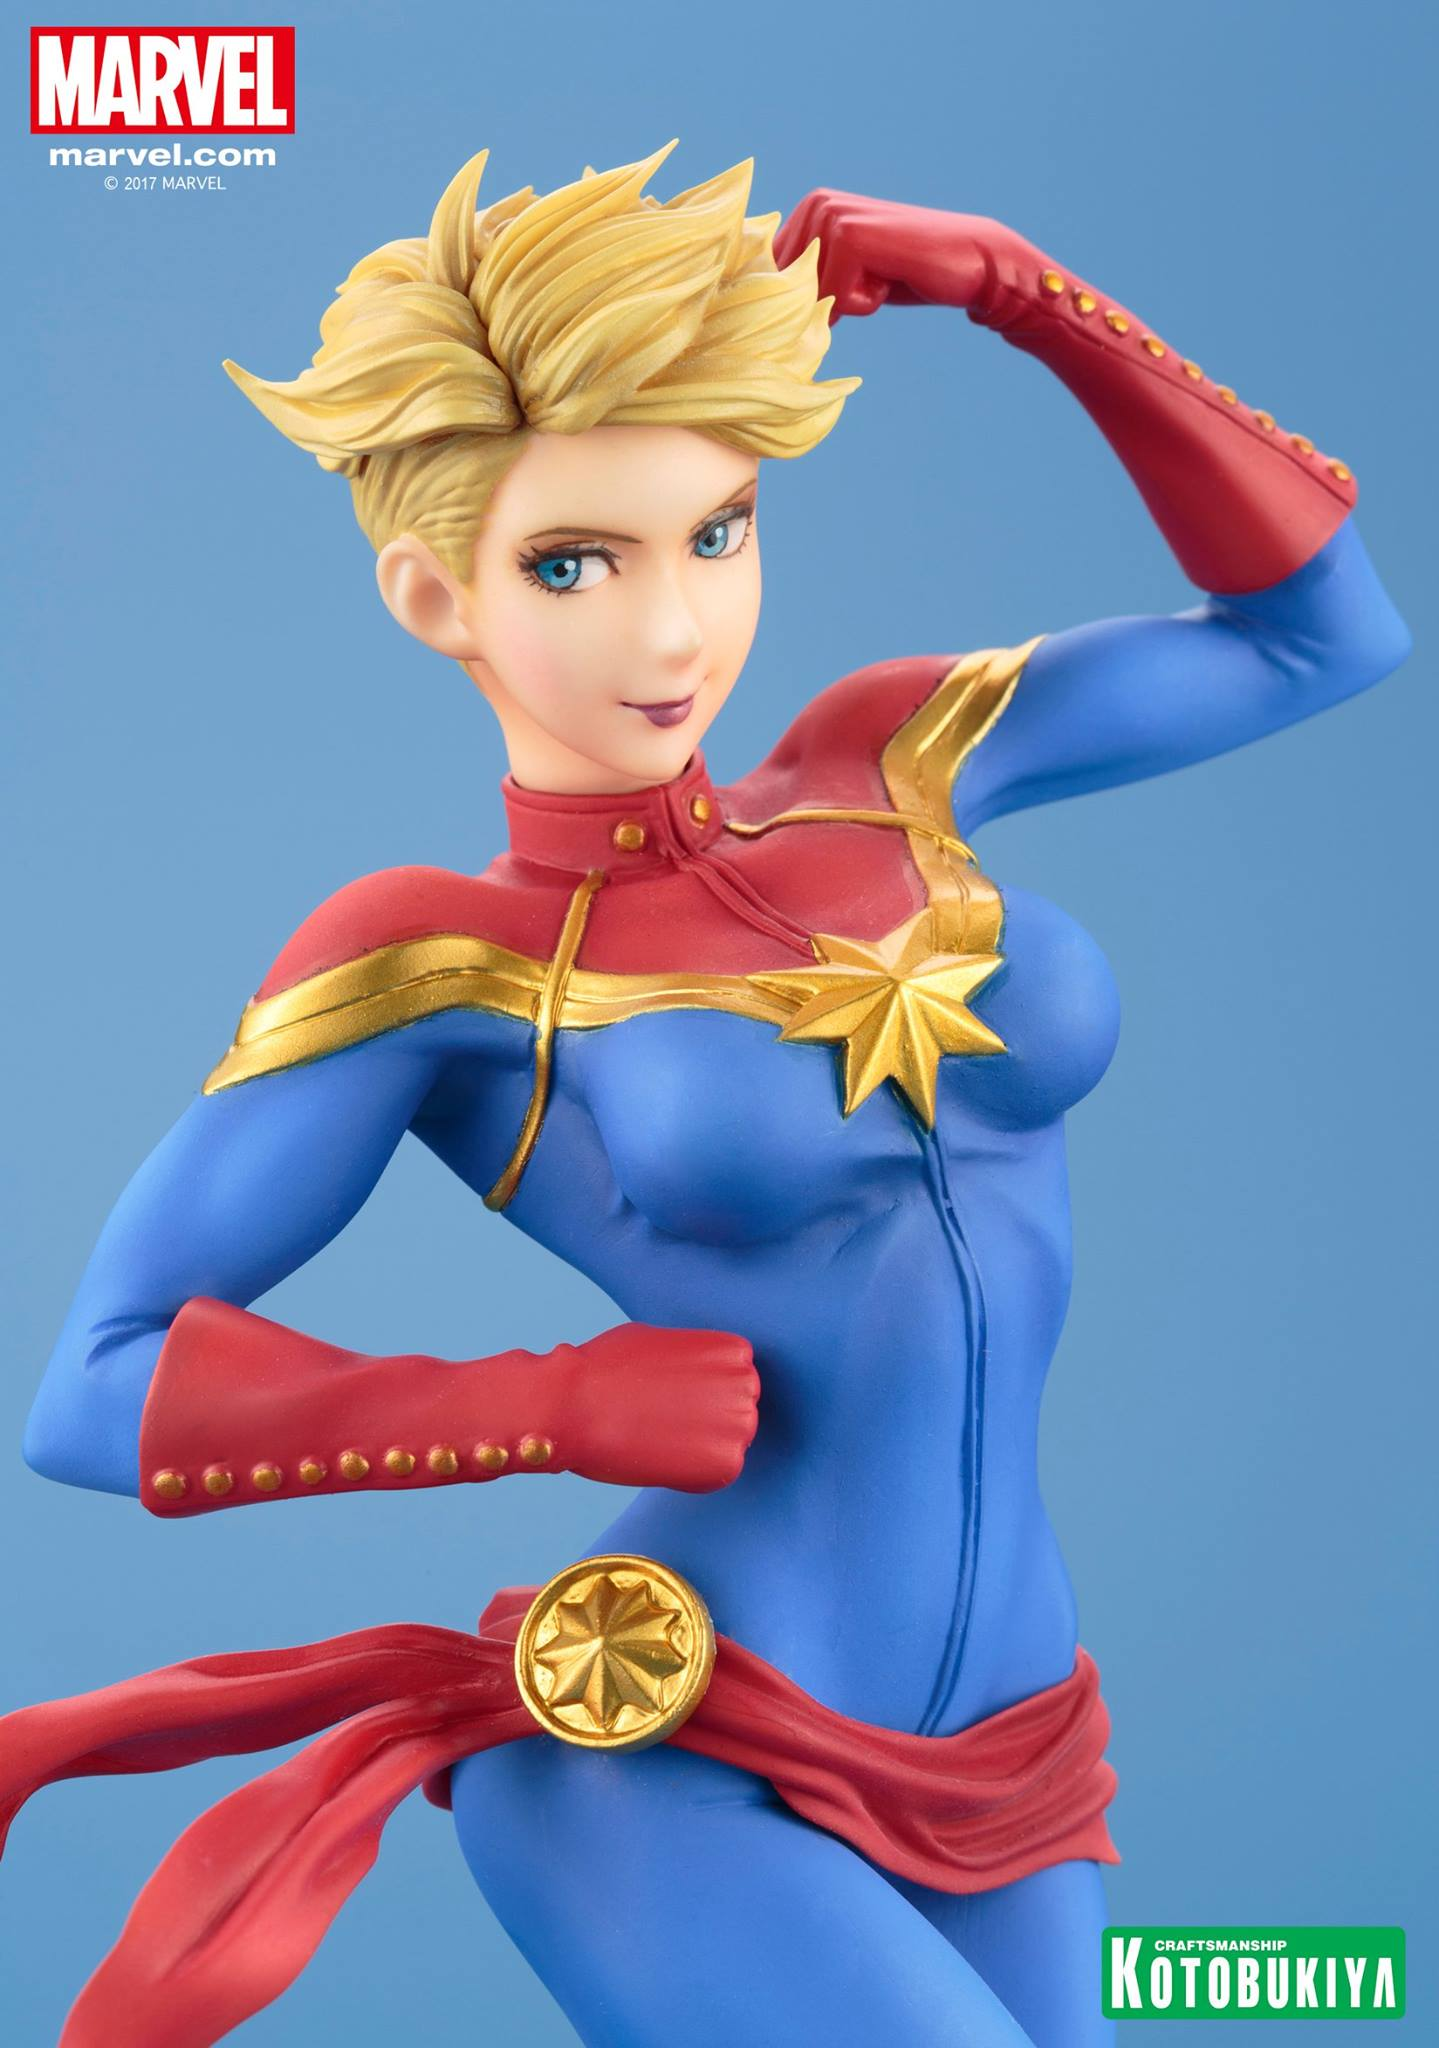 Kotobukiya Captain Marvel Bishoujo Statue The Toyark News